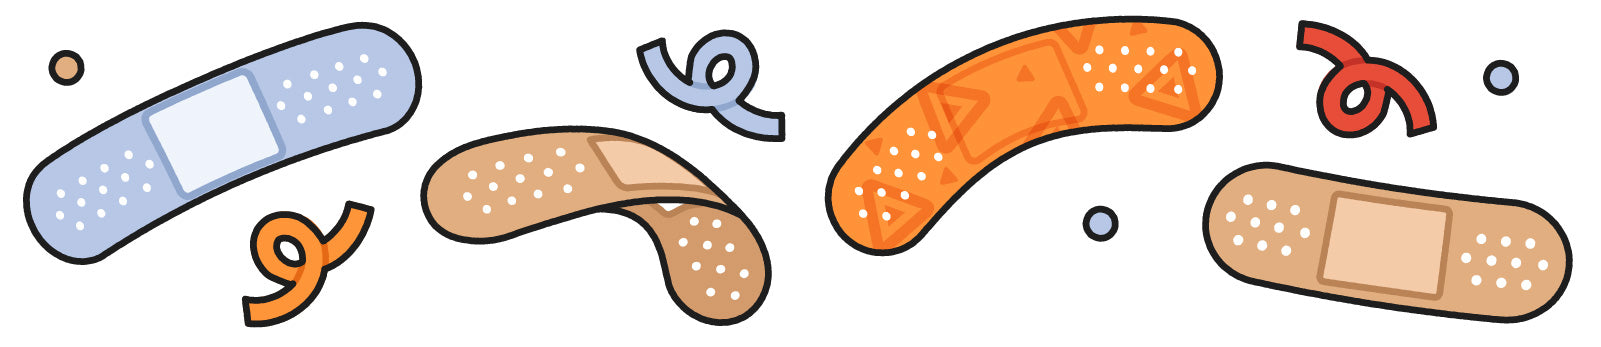 Line of illustrated bandaids in various colors